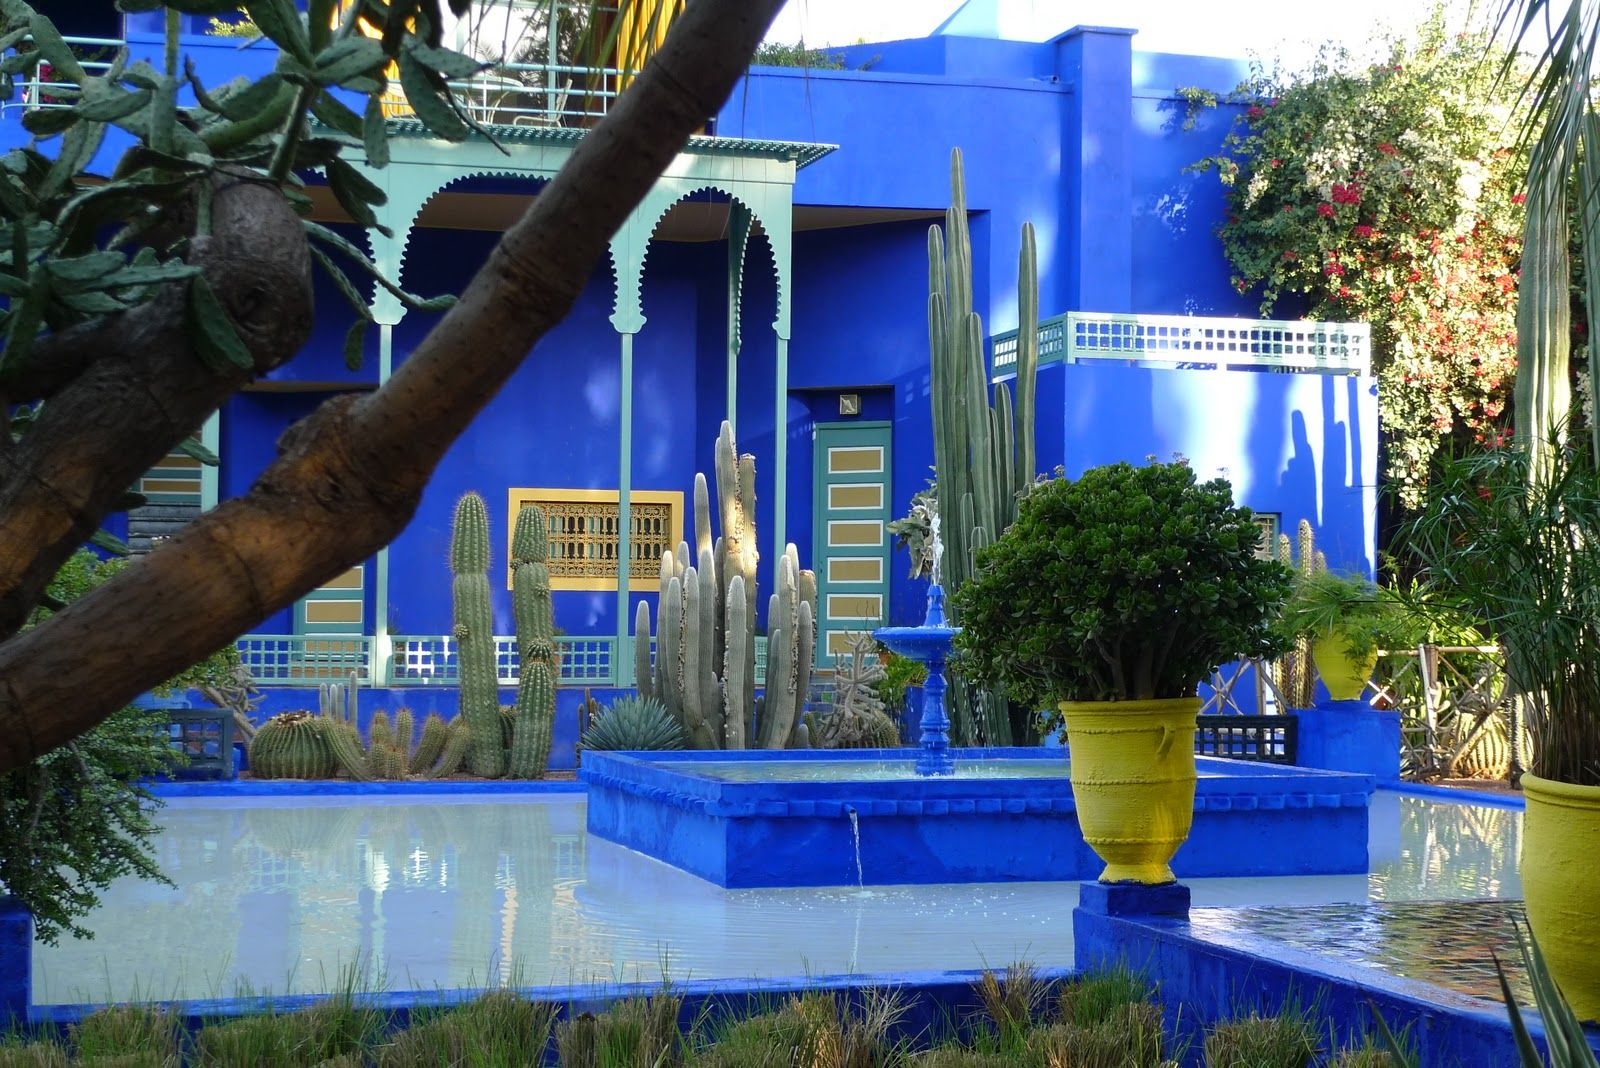 jardin majorelle monuments du maroc gites atlas le jardin majorelle pinterest jardin. Black Bedroom Furniture Sets. Home Design Ideas